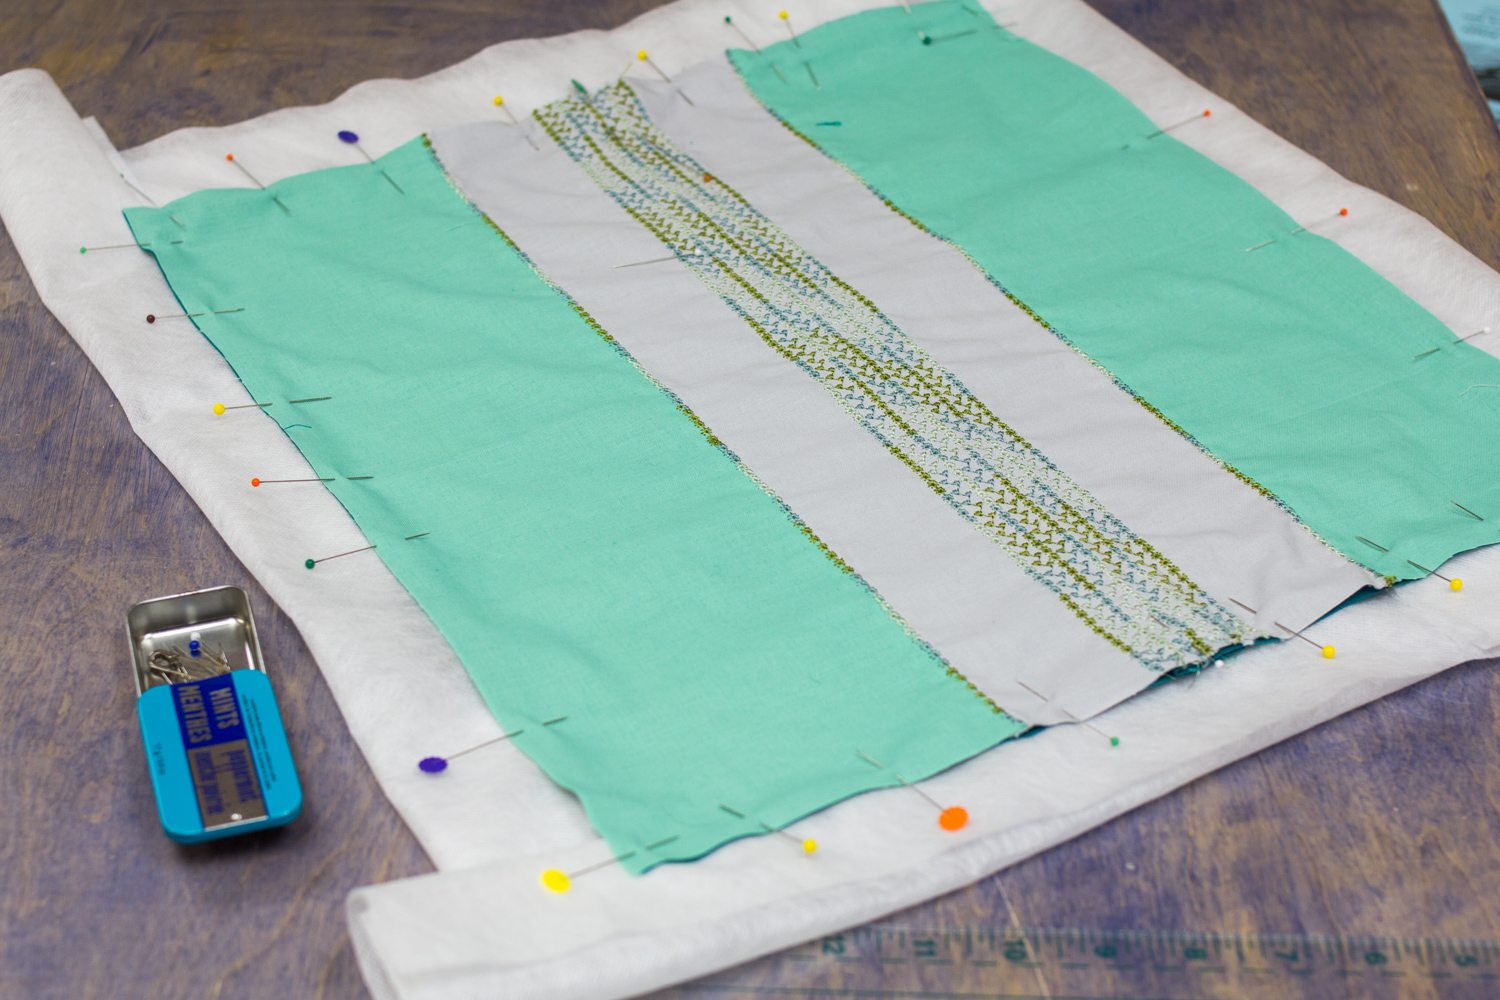 We will be crocheting all four edges of our pillowcase, so have attached water soluble stabilizer to every edge.